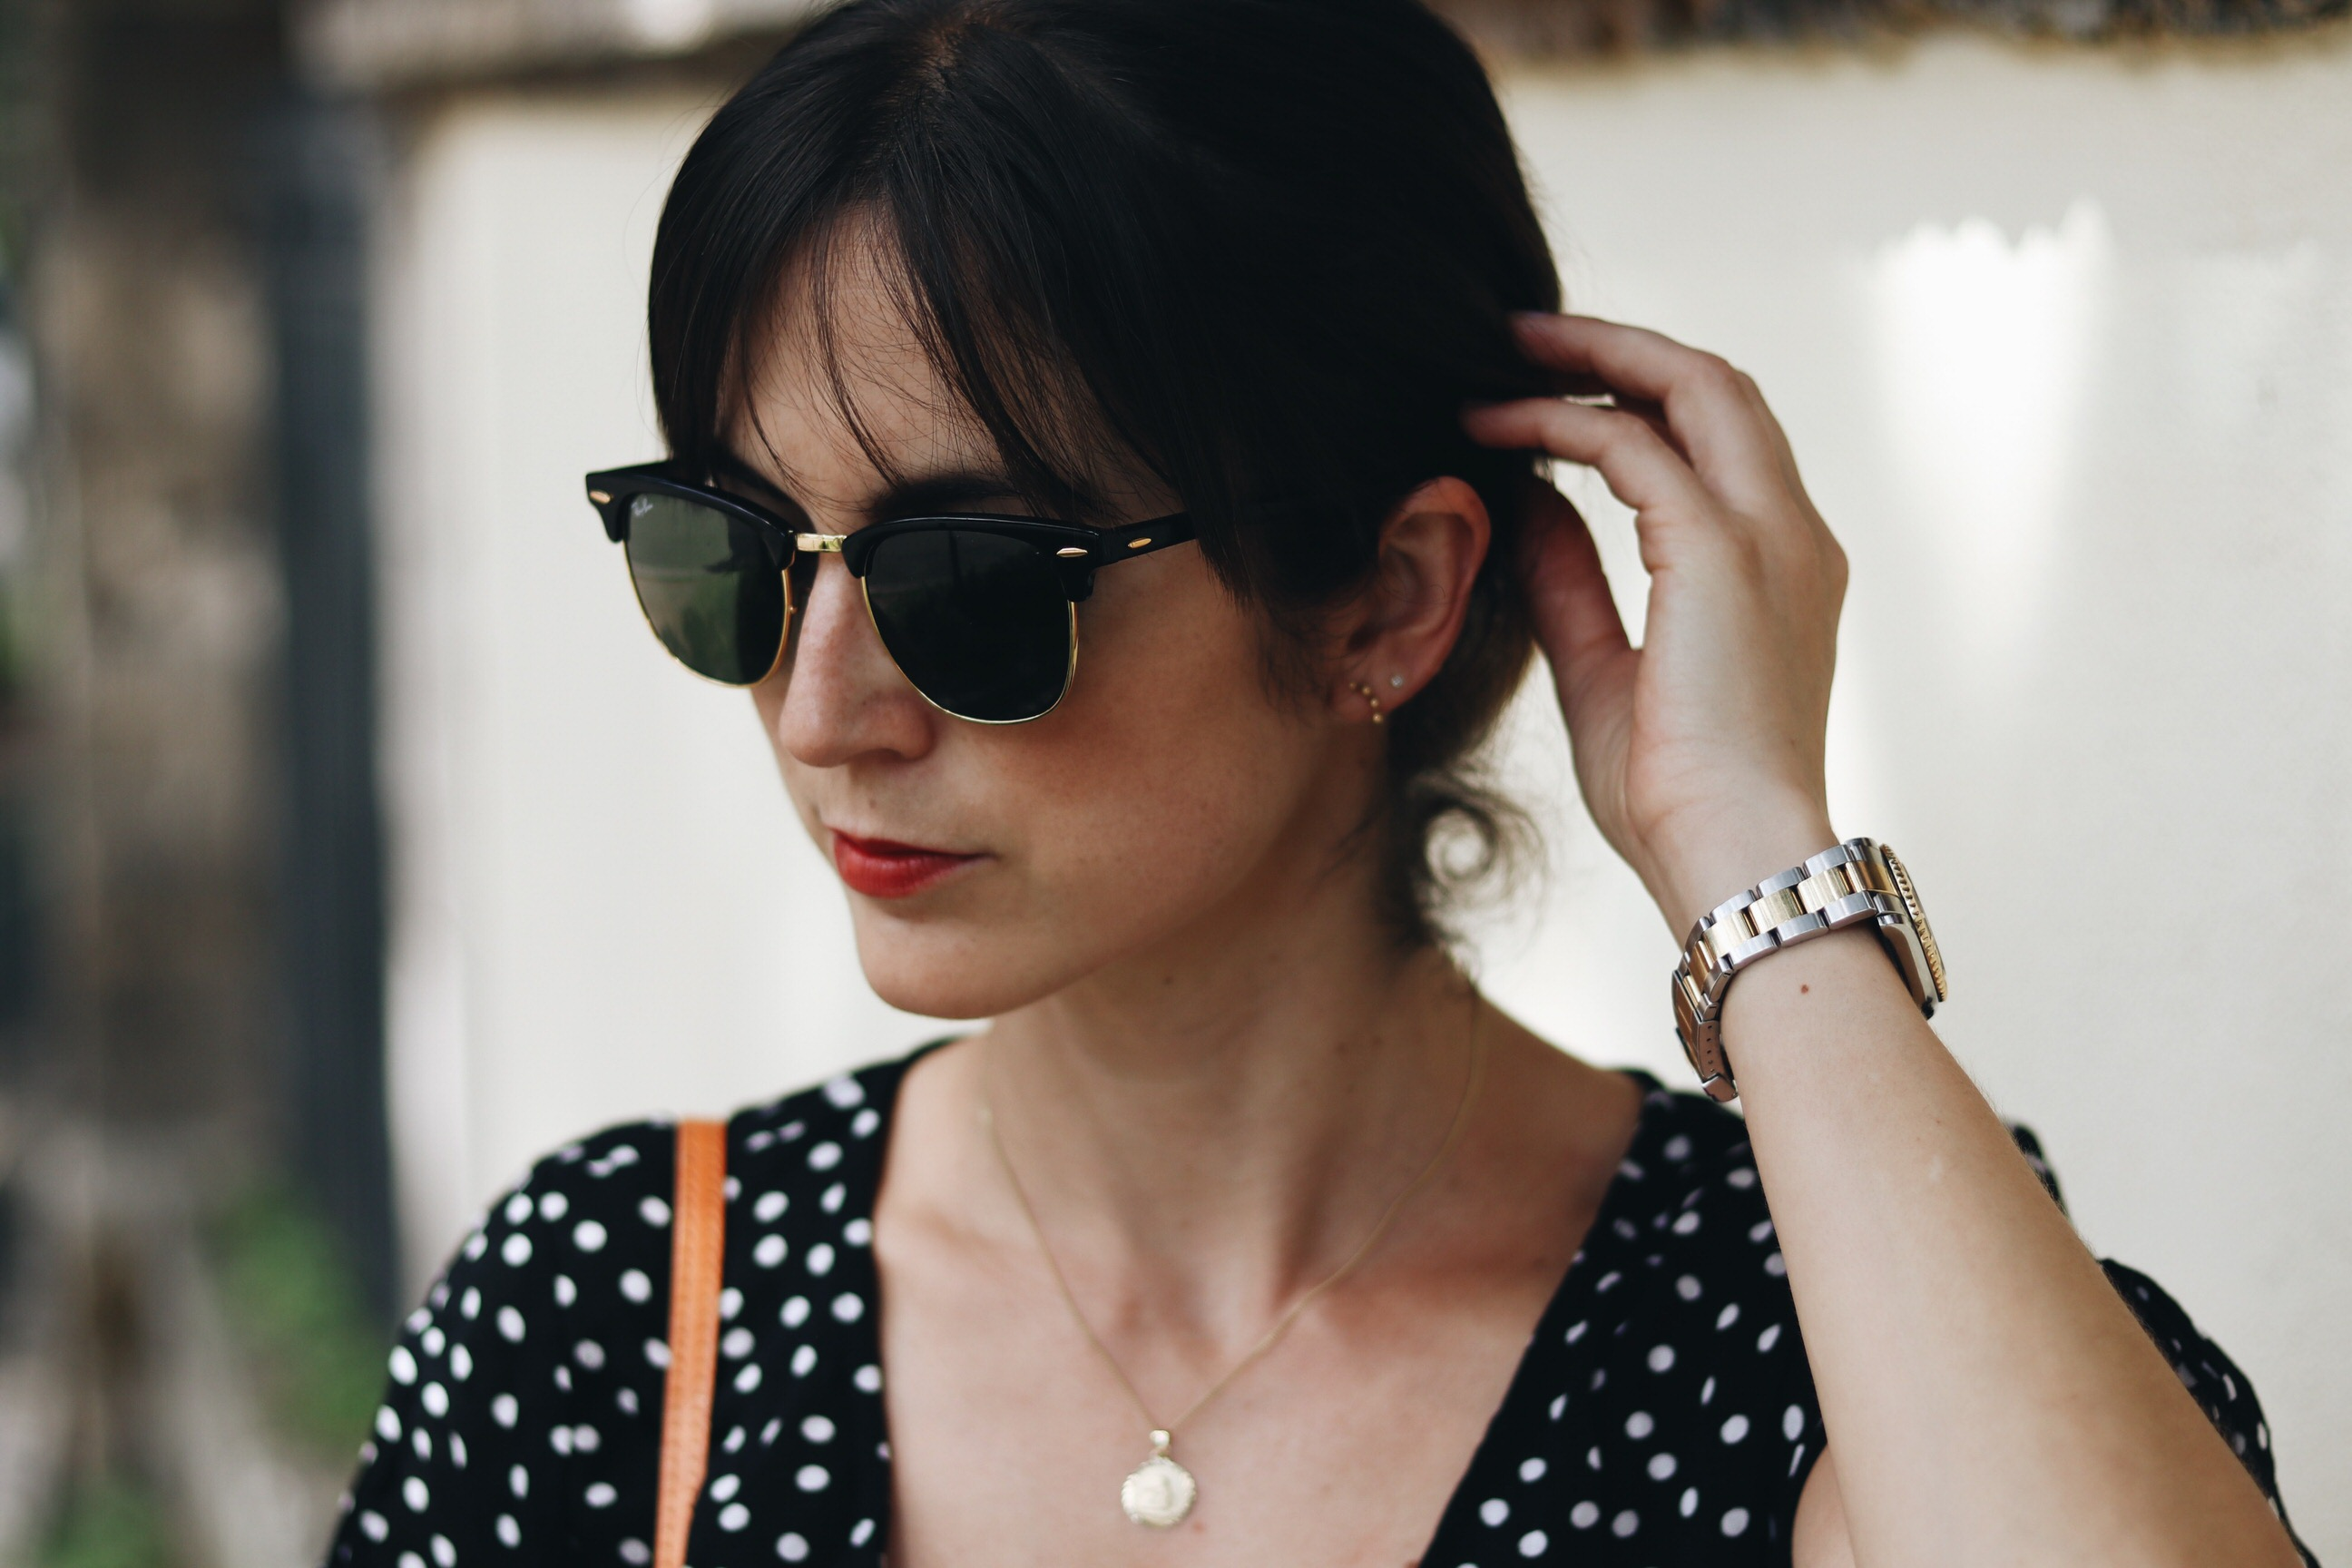 ray-ban-sonnenbrille-outfit-kombinieren